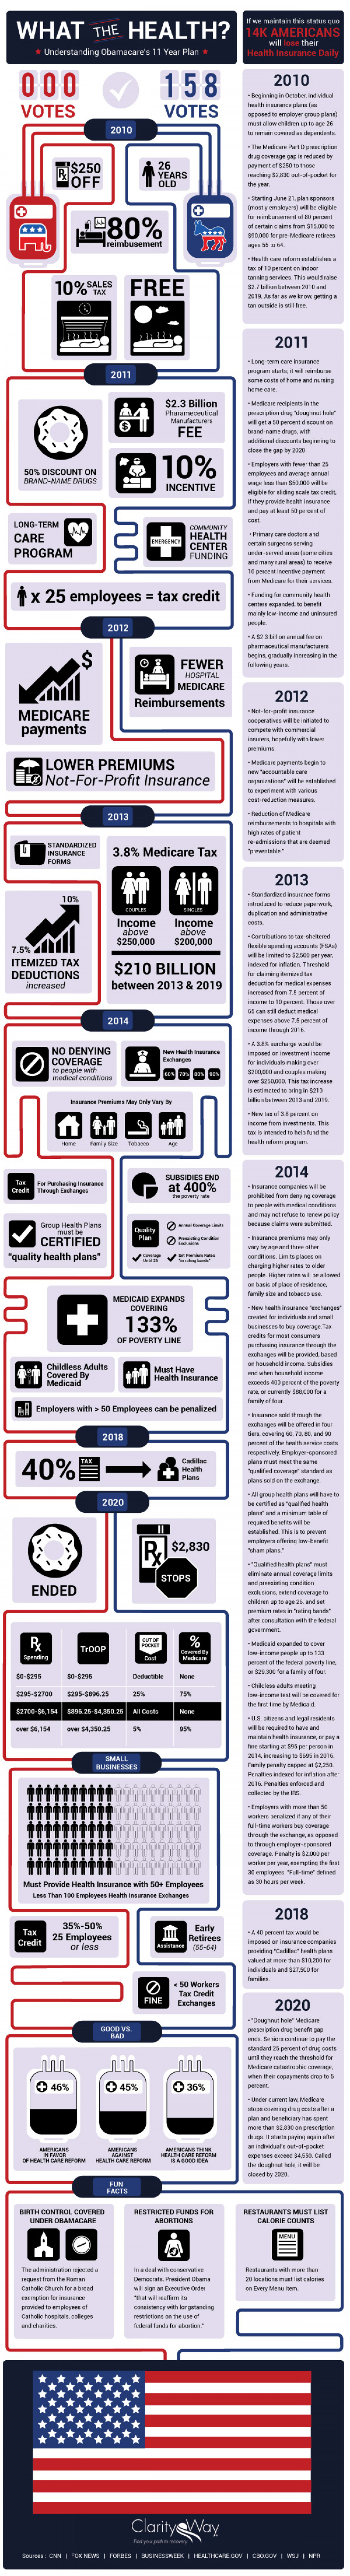 What the Health? Understanding Obama's 11 Year Plan for Health Reform Infographic